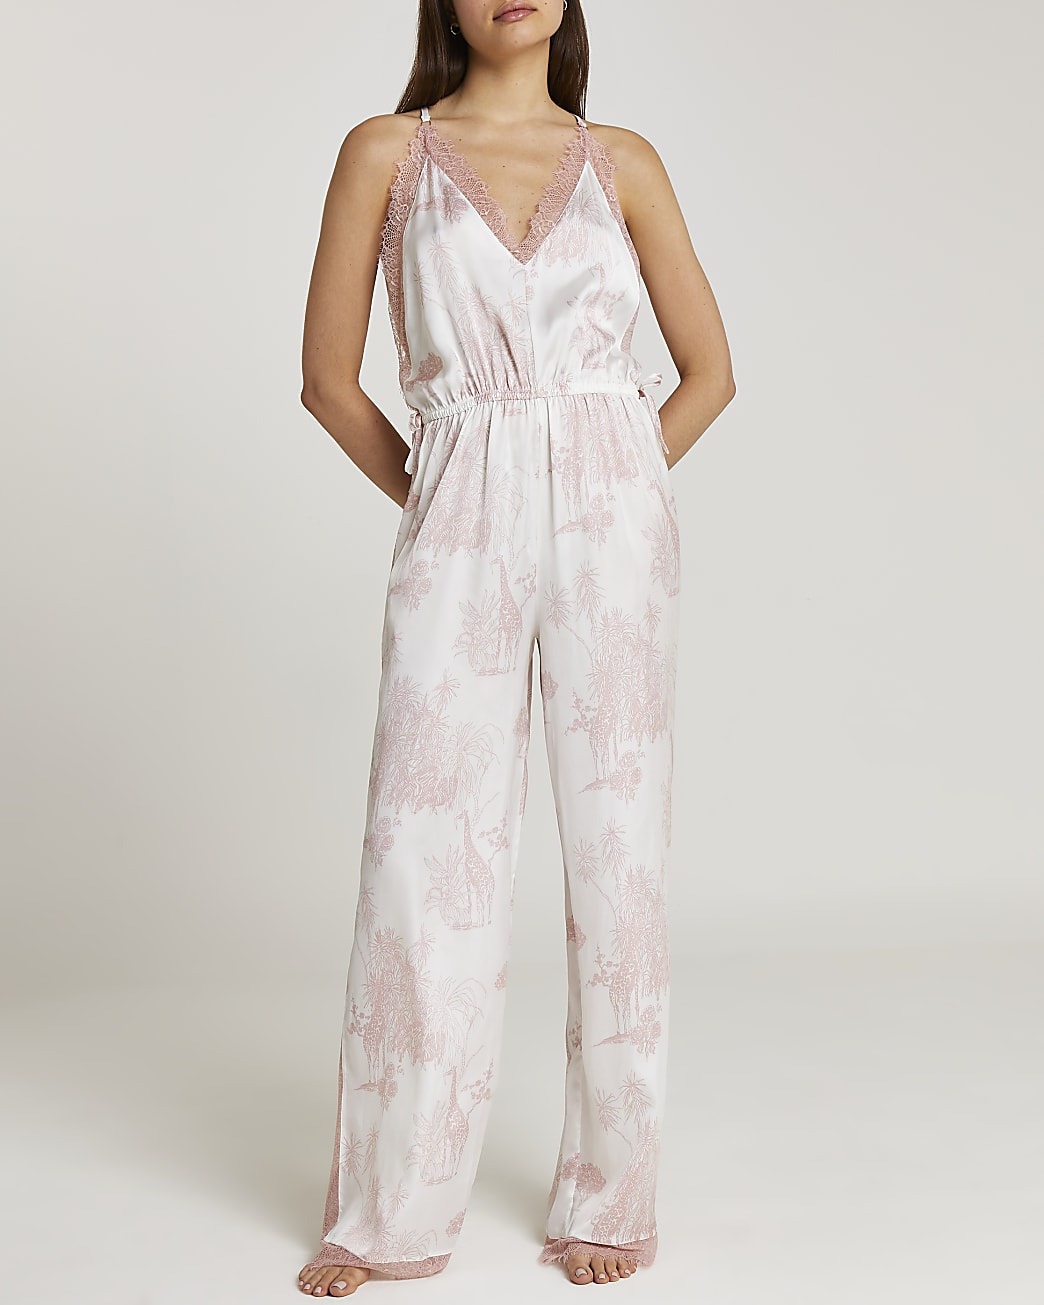 Pink printed satin and lace jumpsuit